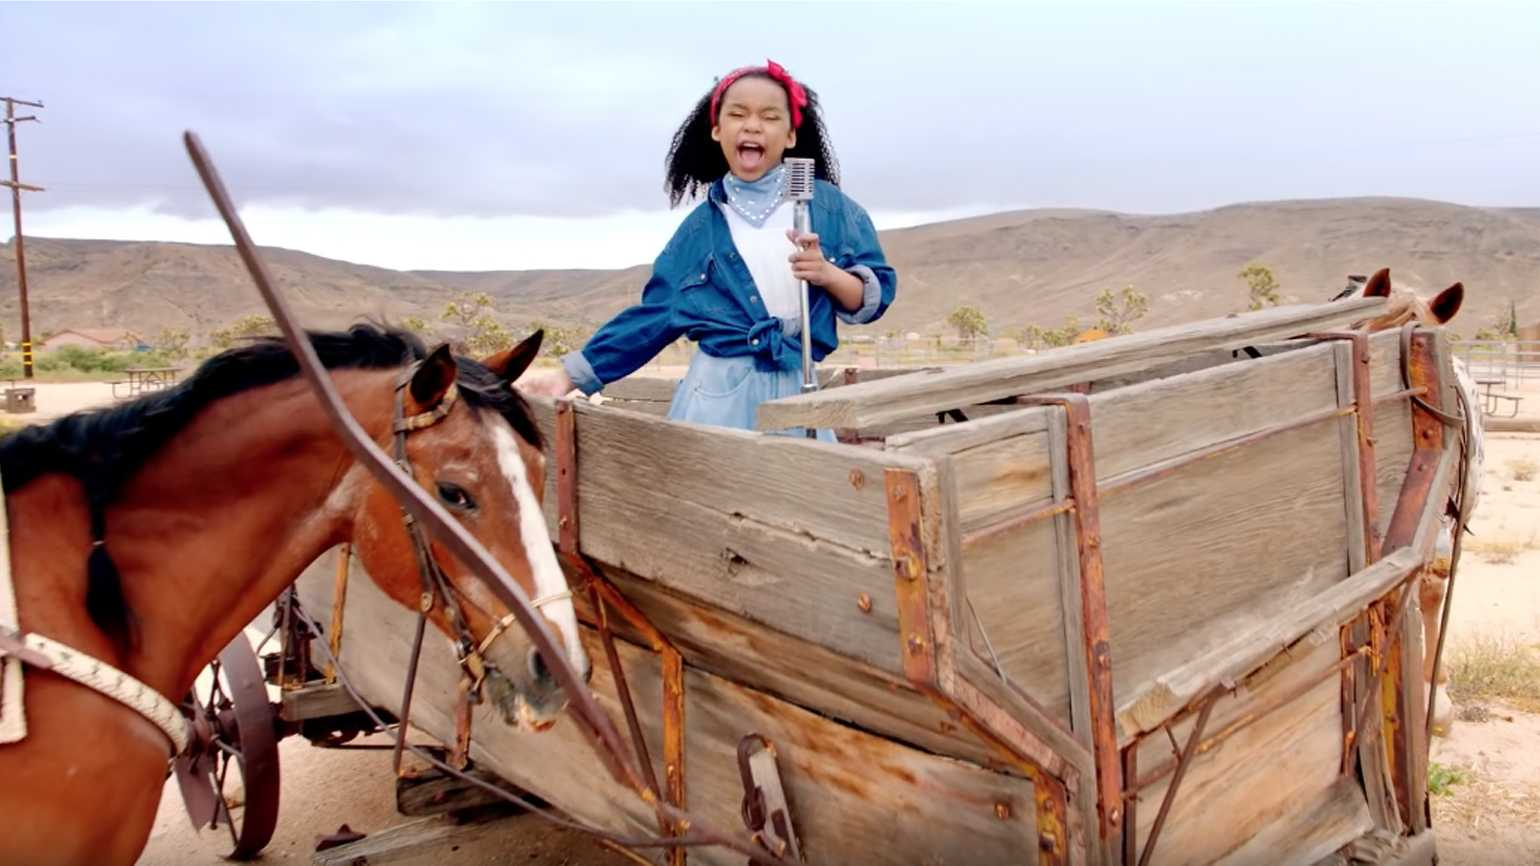 A young  girl singing 'Old Town Road' by Lil Nas X.